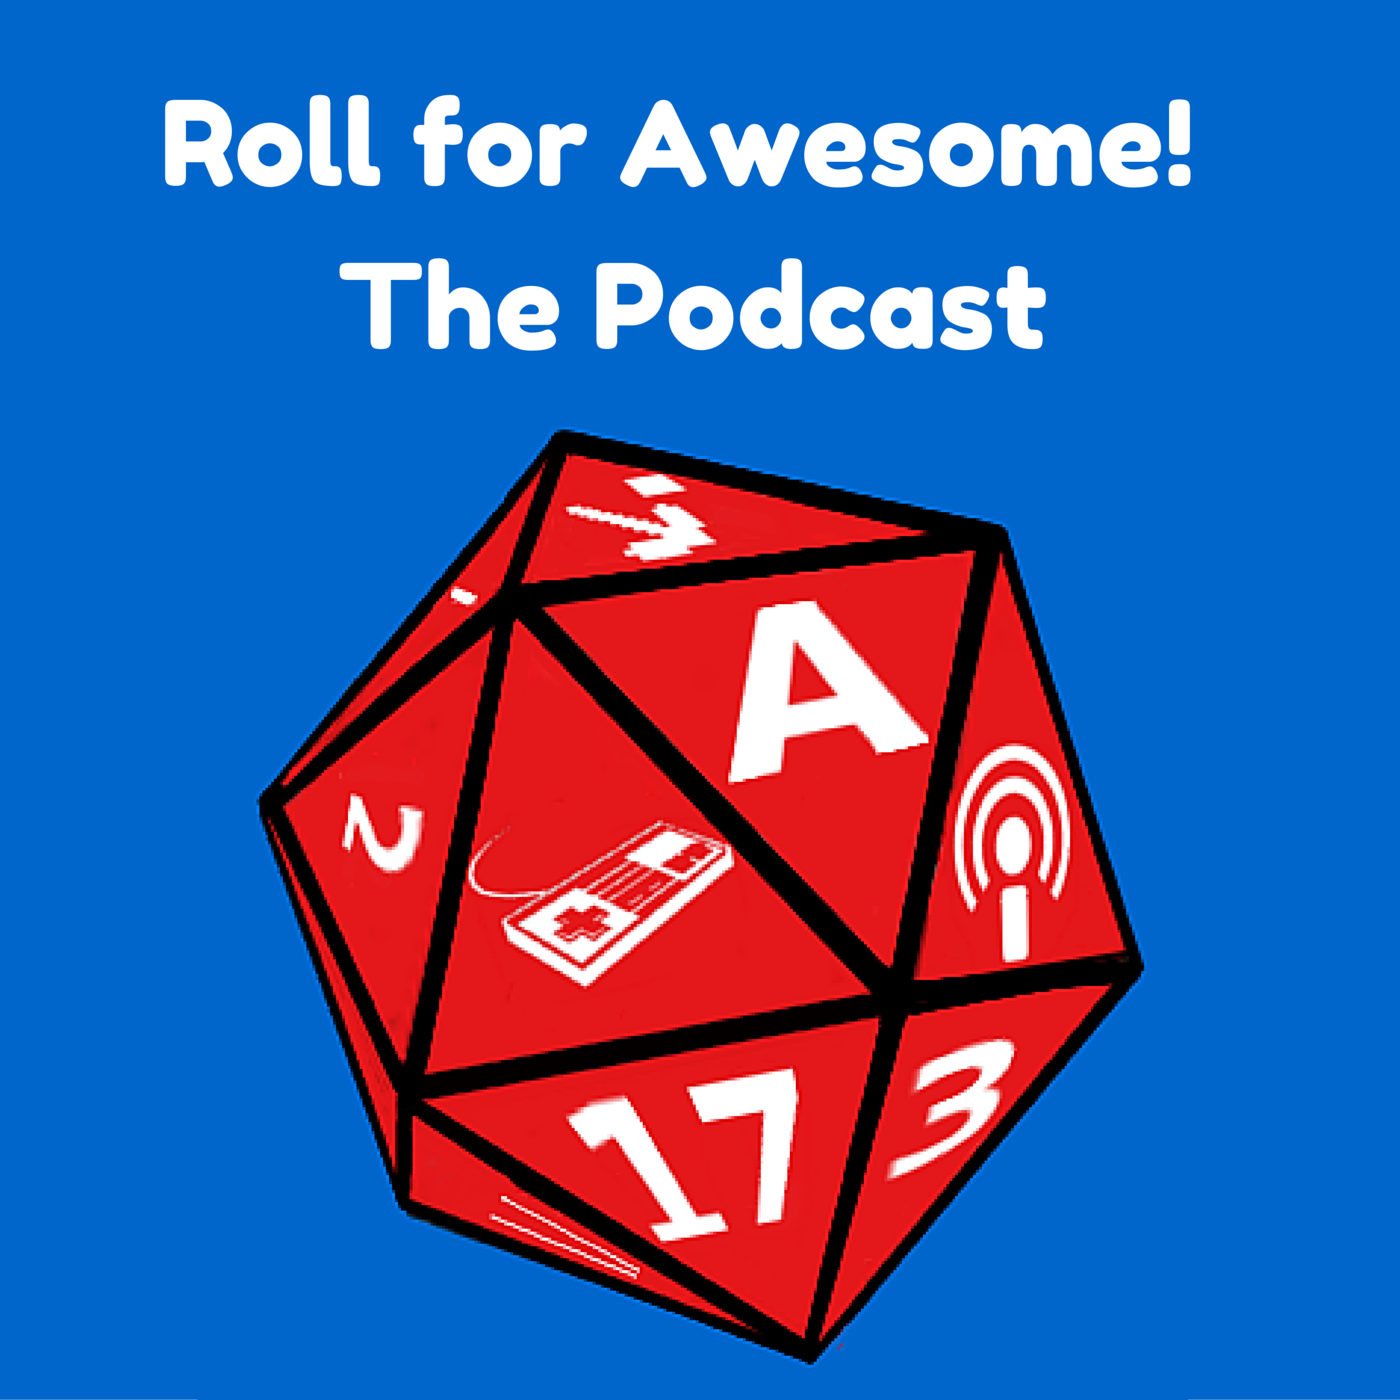 Roll For Awesome!